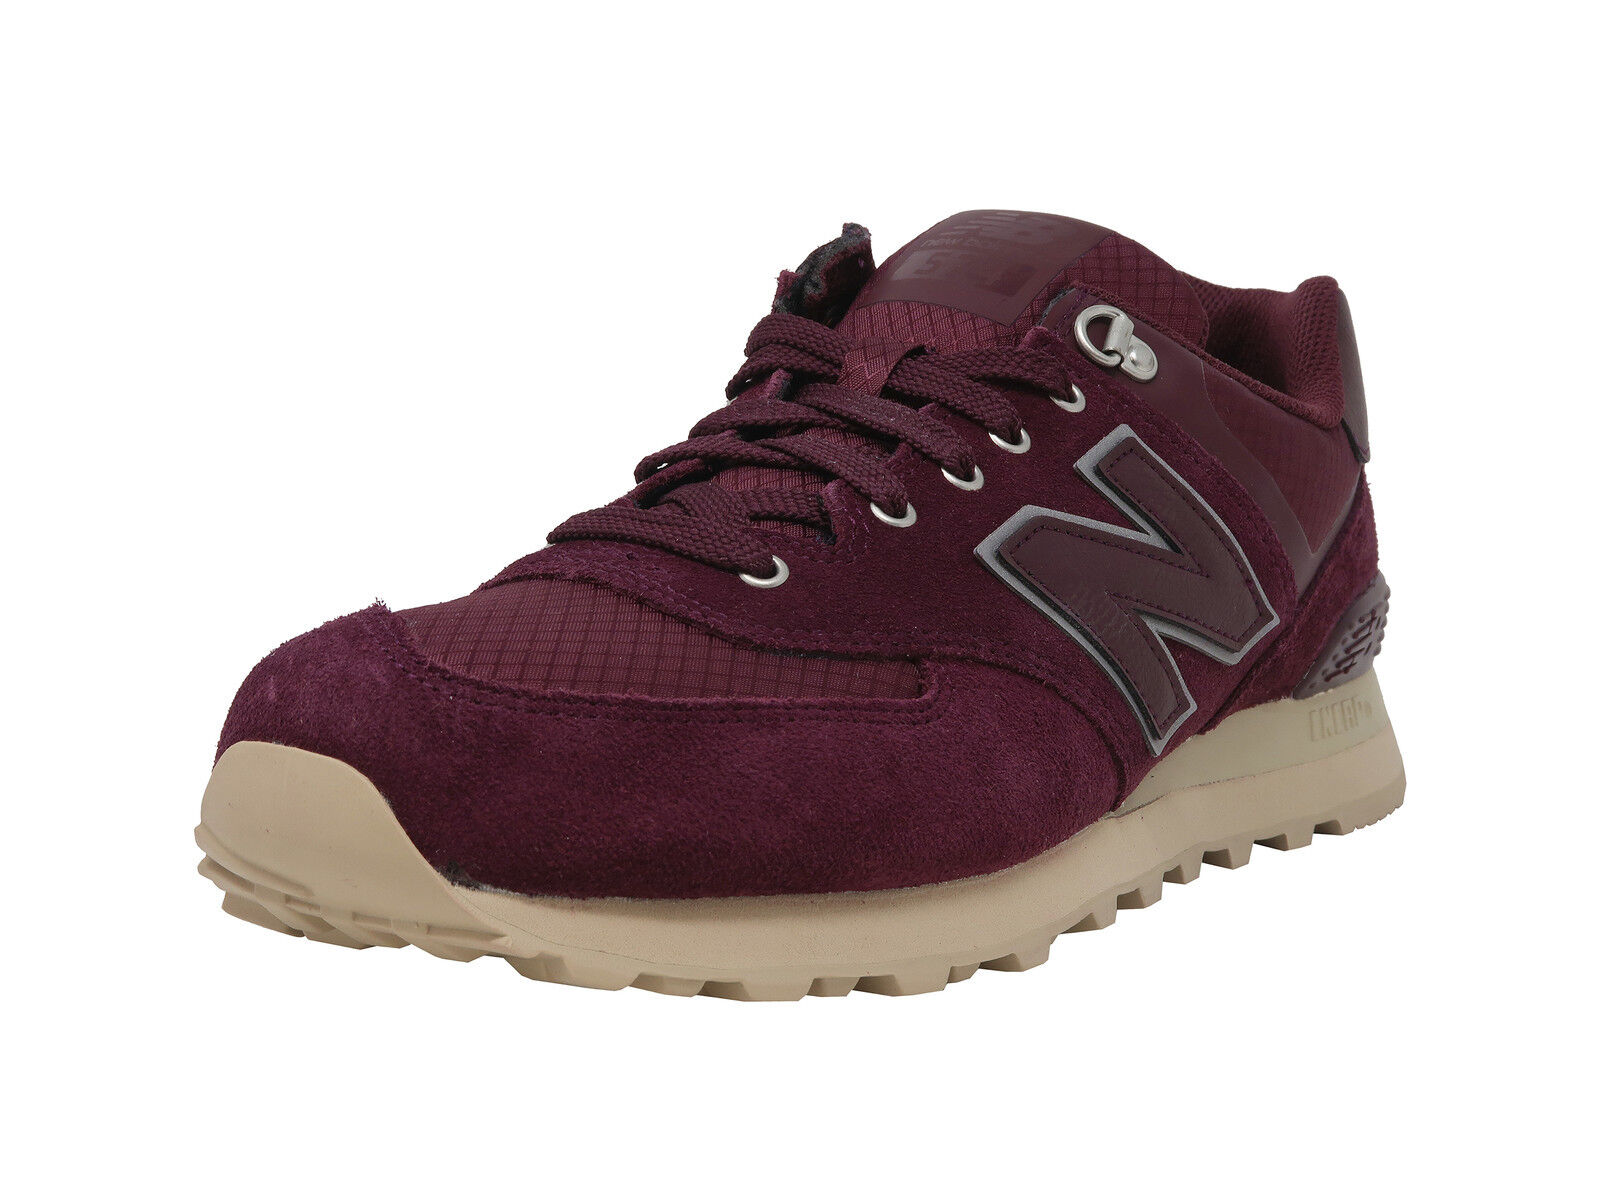 New Balance shoes Mens Athletic Burgundy Beige Outsole 574 Sneaker